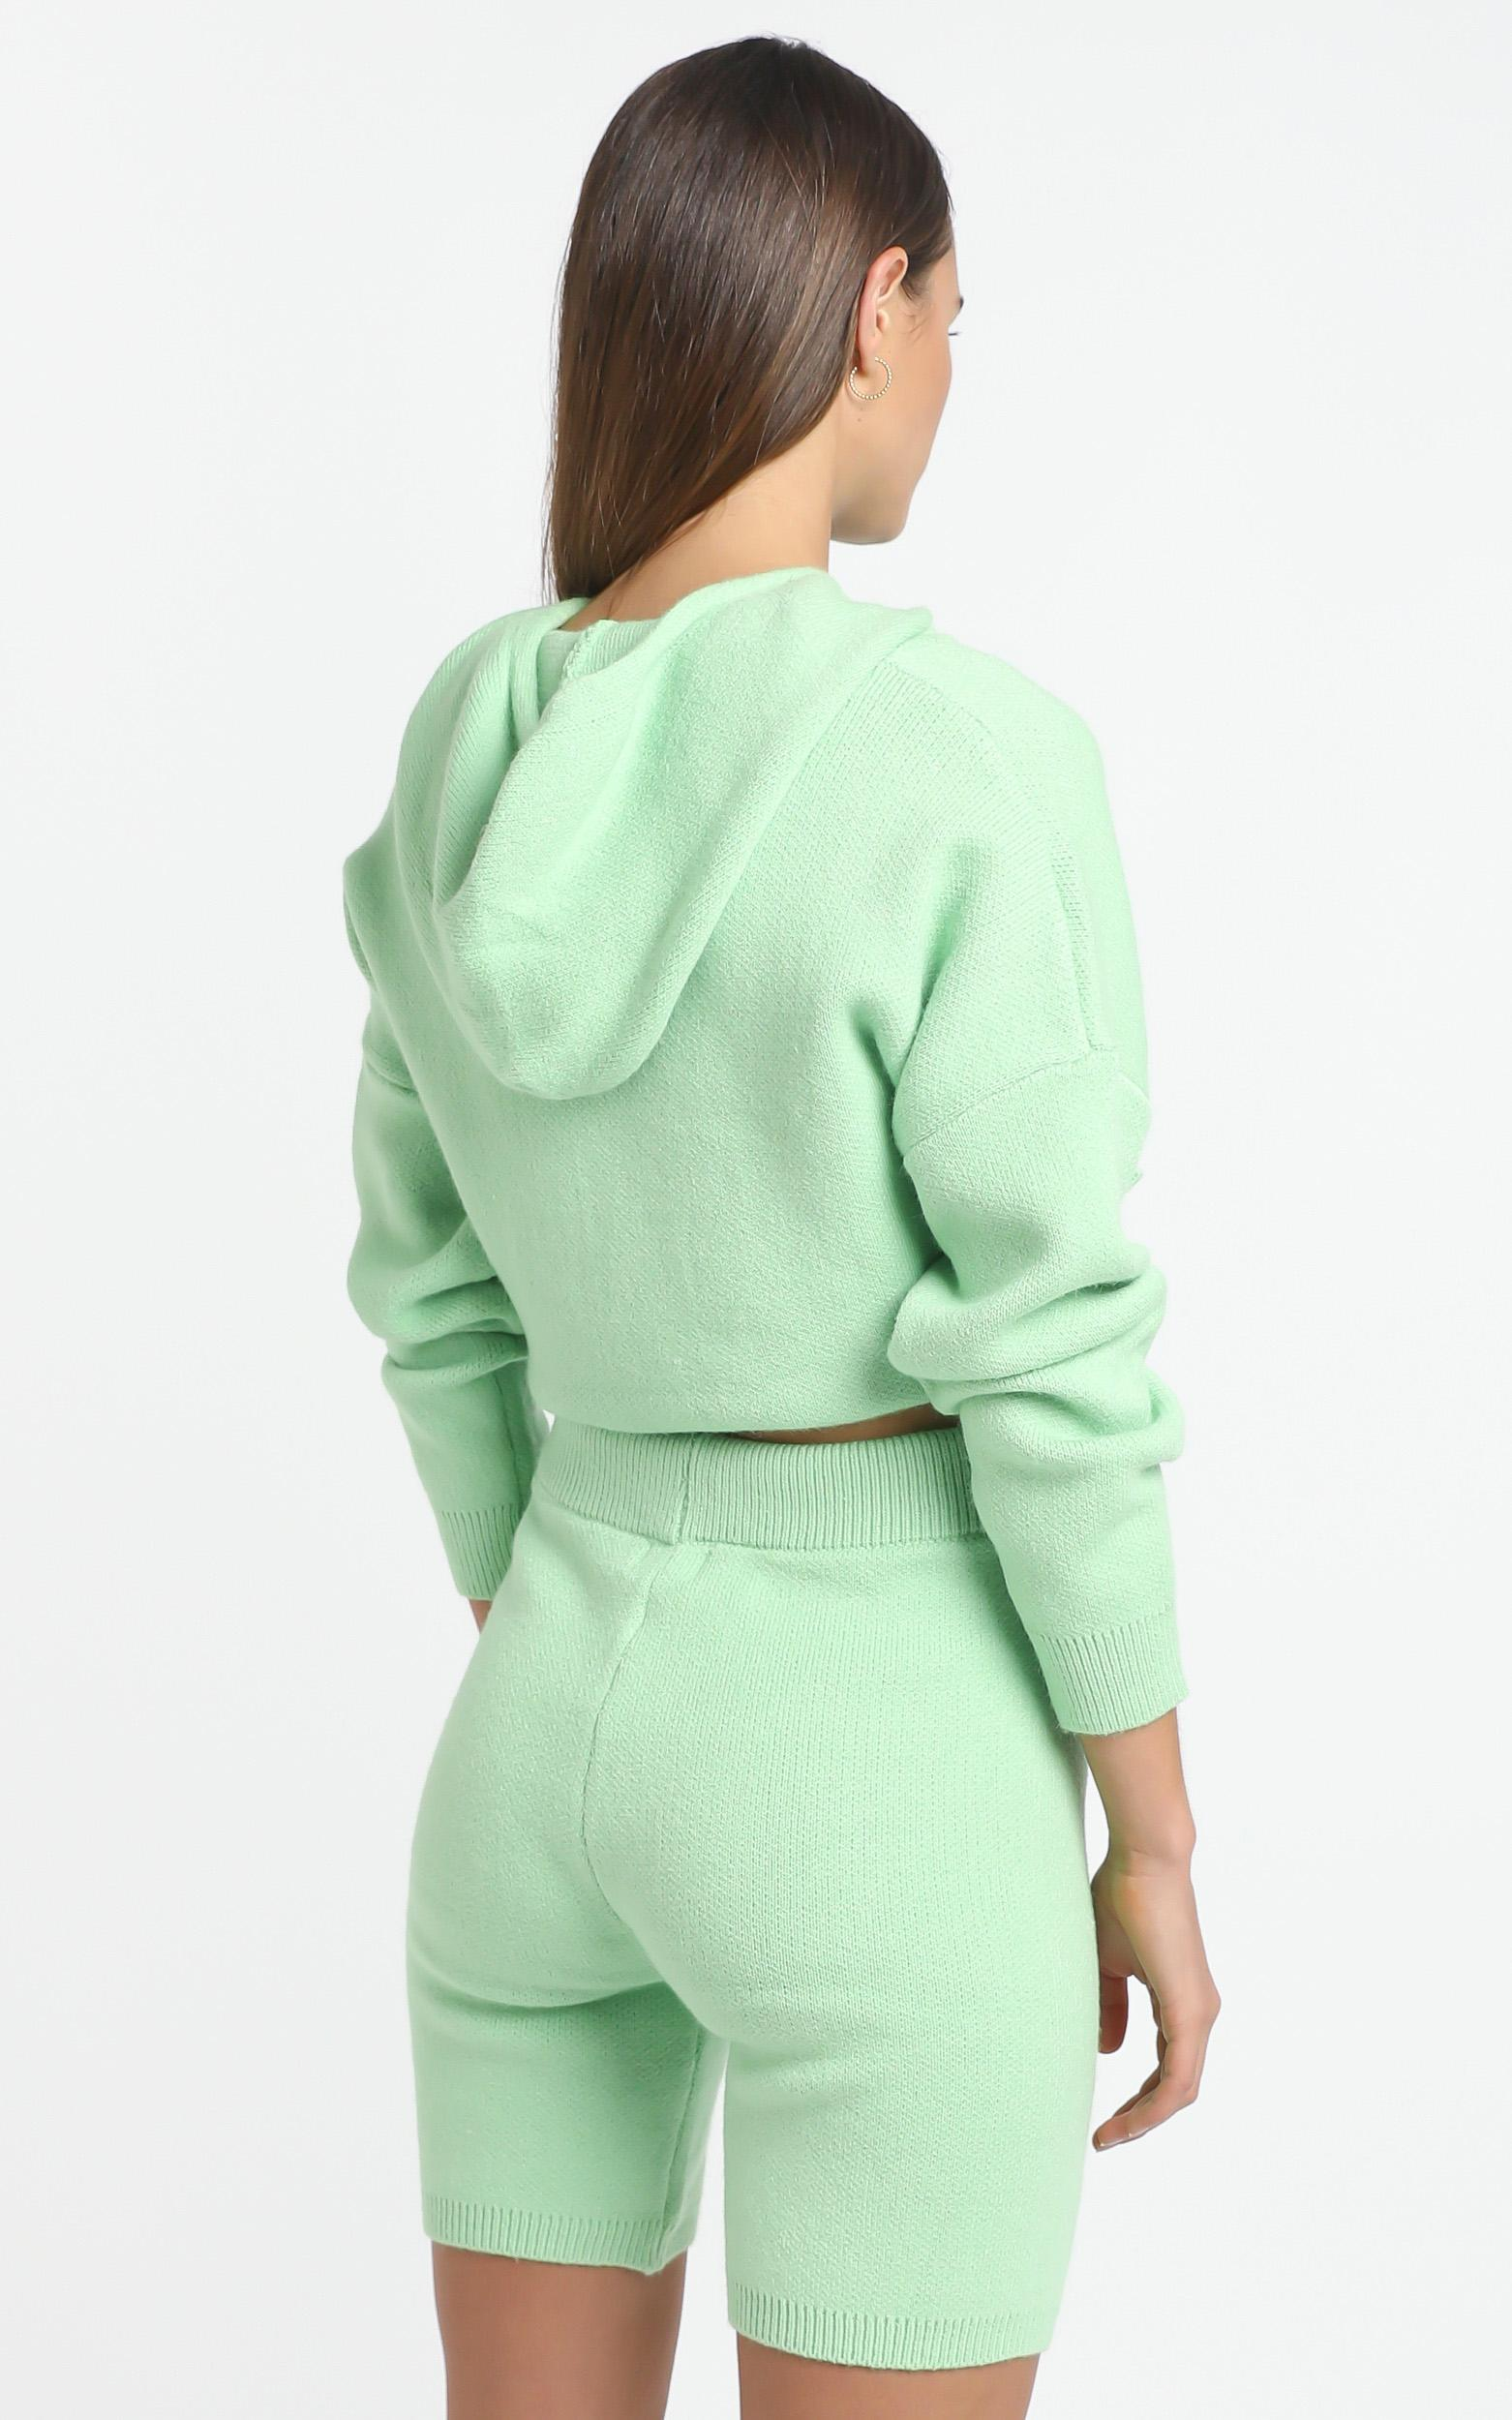 Cosy Club Knit Hoody in Mint - 12 (L), Green, hi-res image number null